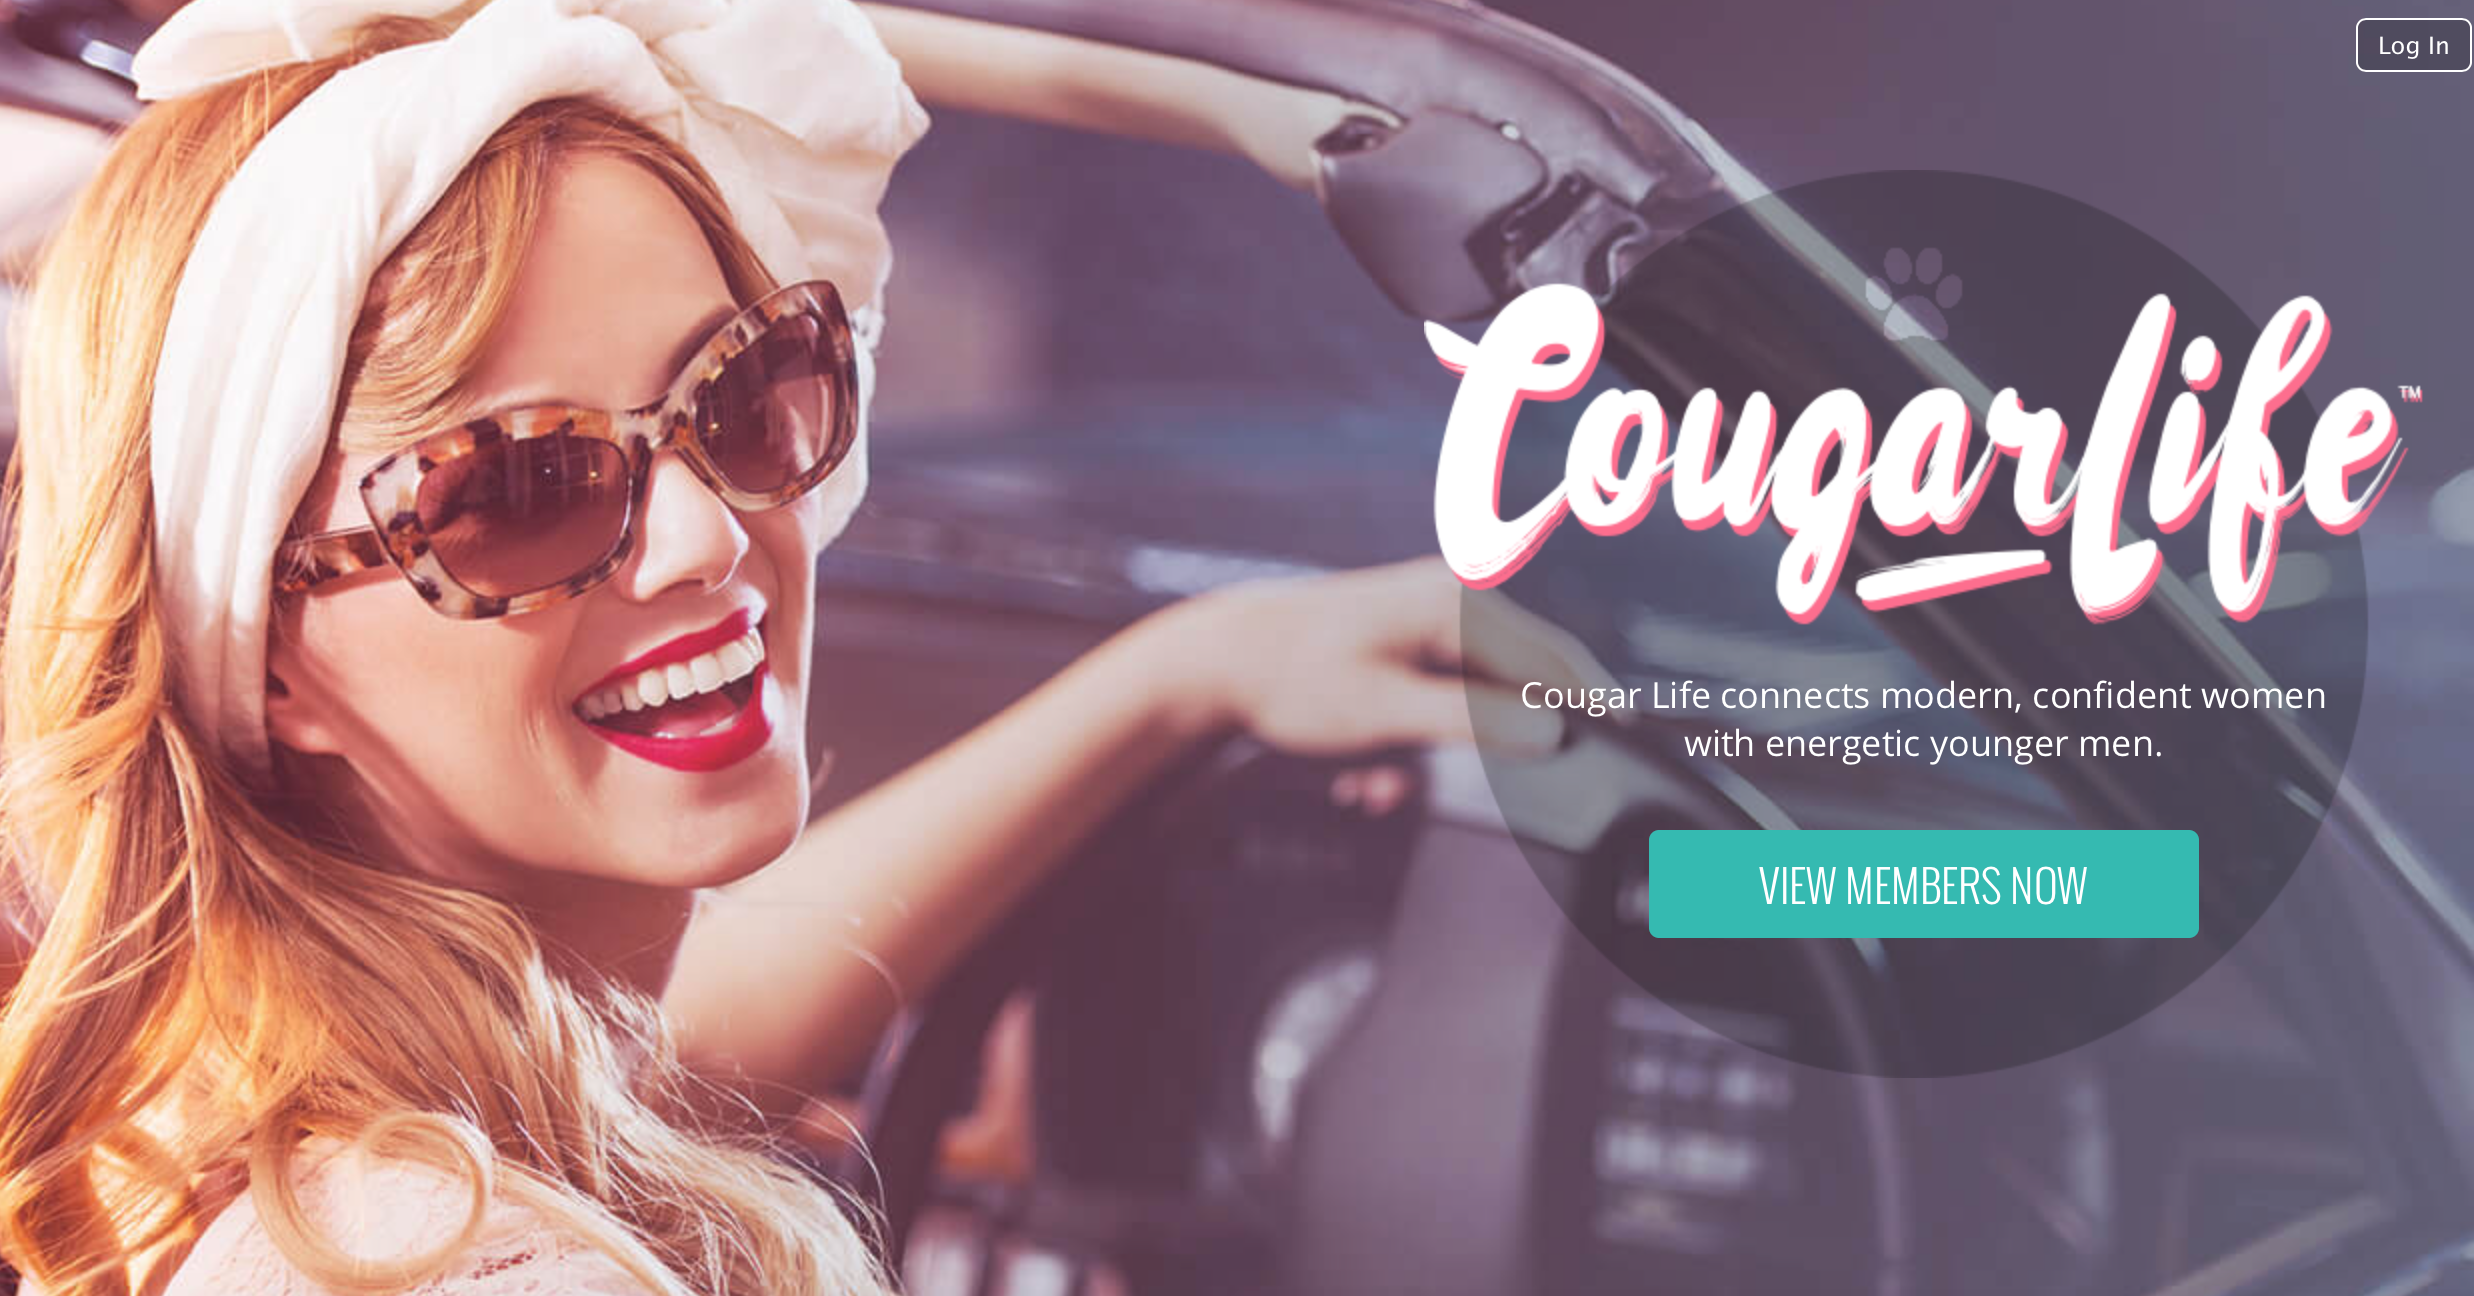 brule cougars dating site Lonely housewife & cougar dating site reviews: the very best lonely housewife / cougar dating sites and the ones that are designed to scam you.